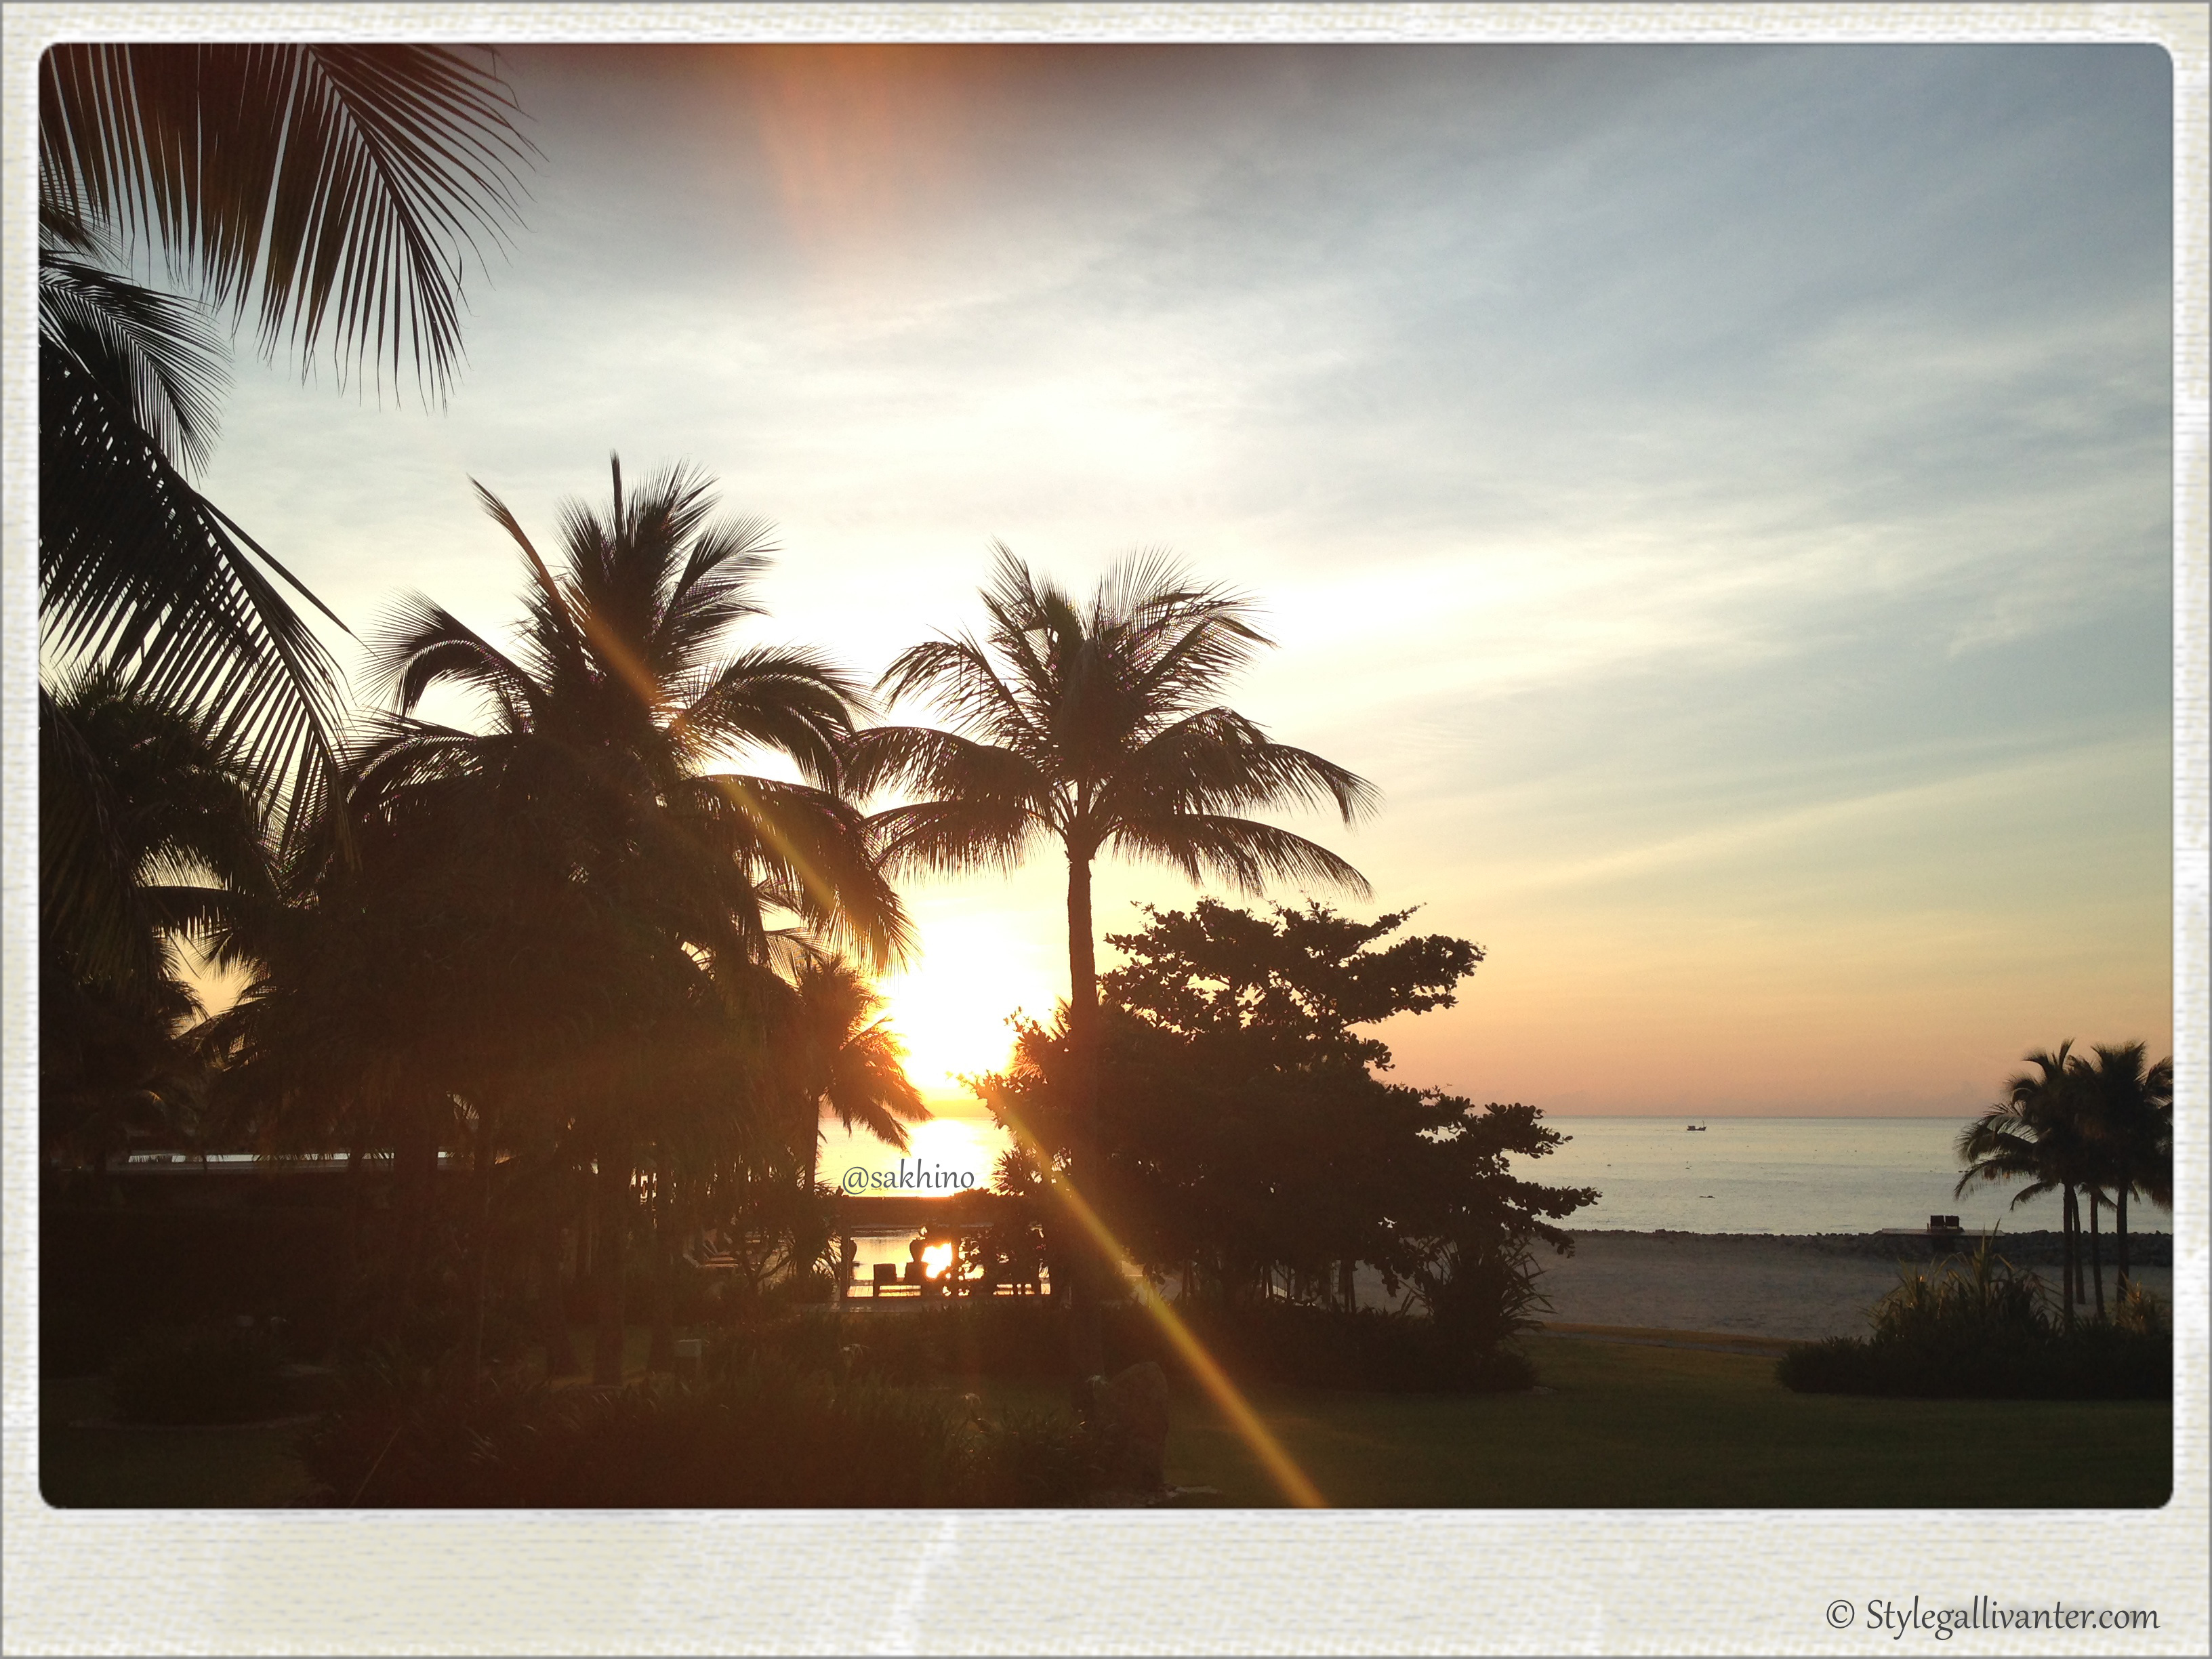 sunrise_nhatrang_vietnam-holiday_best-travel-bloggers_palm-trees_luxe-resorts_luxury-blogs